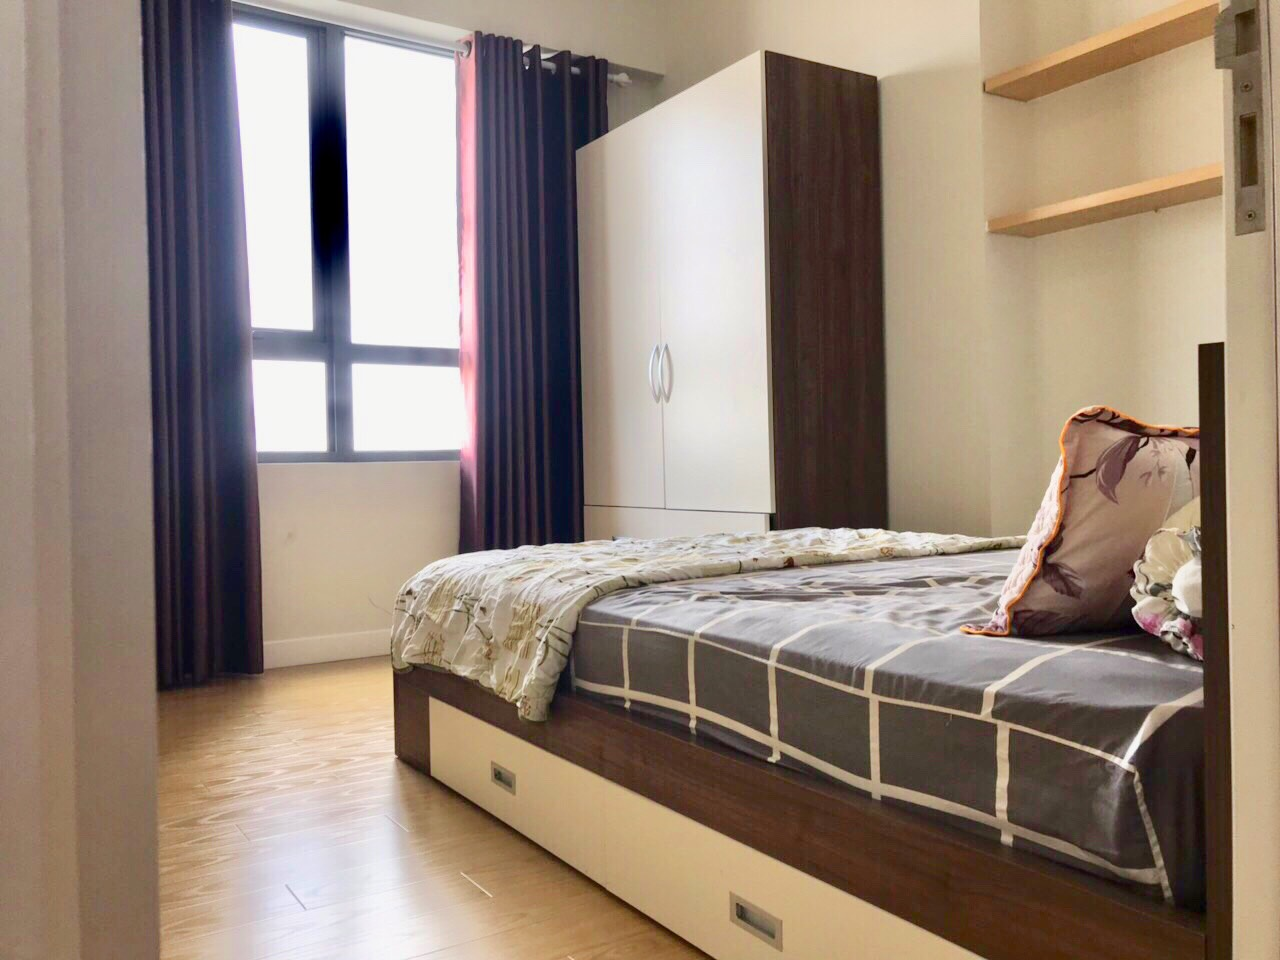 Apartment for rent D214752  (1)